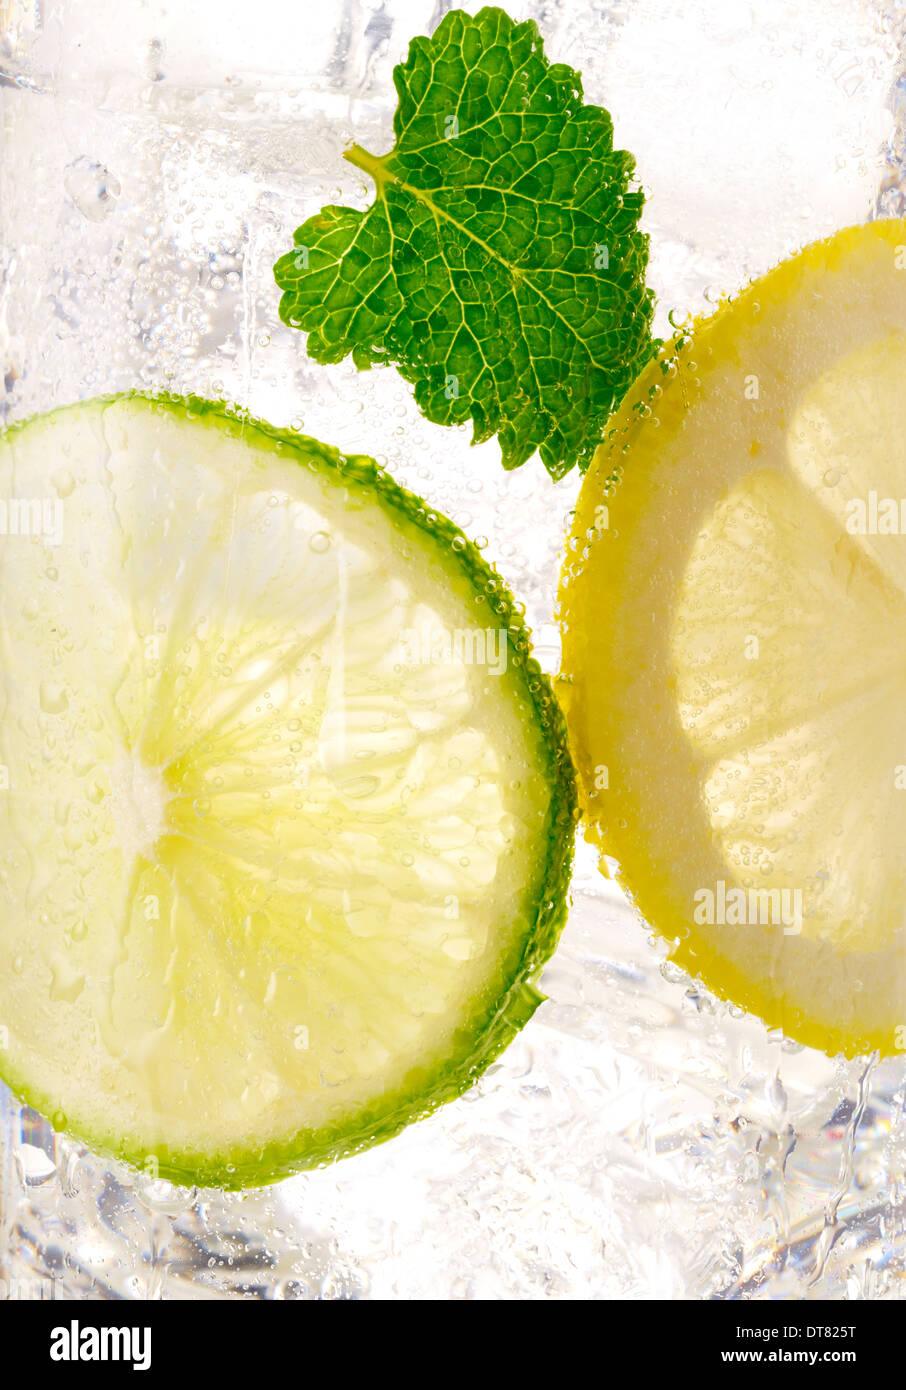 A close up detail of a lemon lime soda with a mint leaf with ice in a clear glass - Stock Image